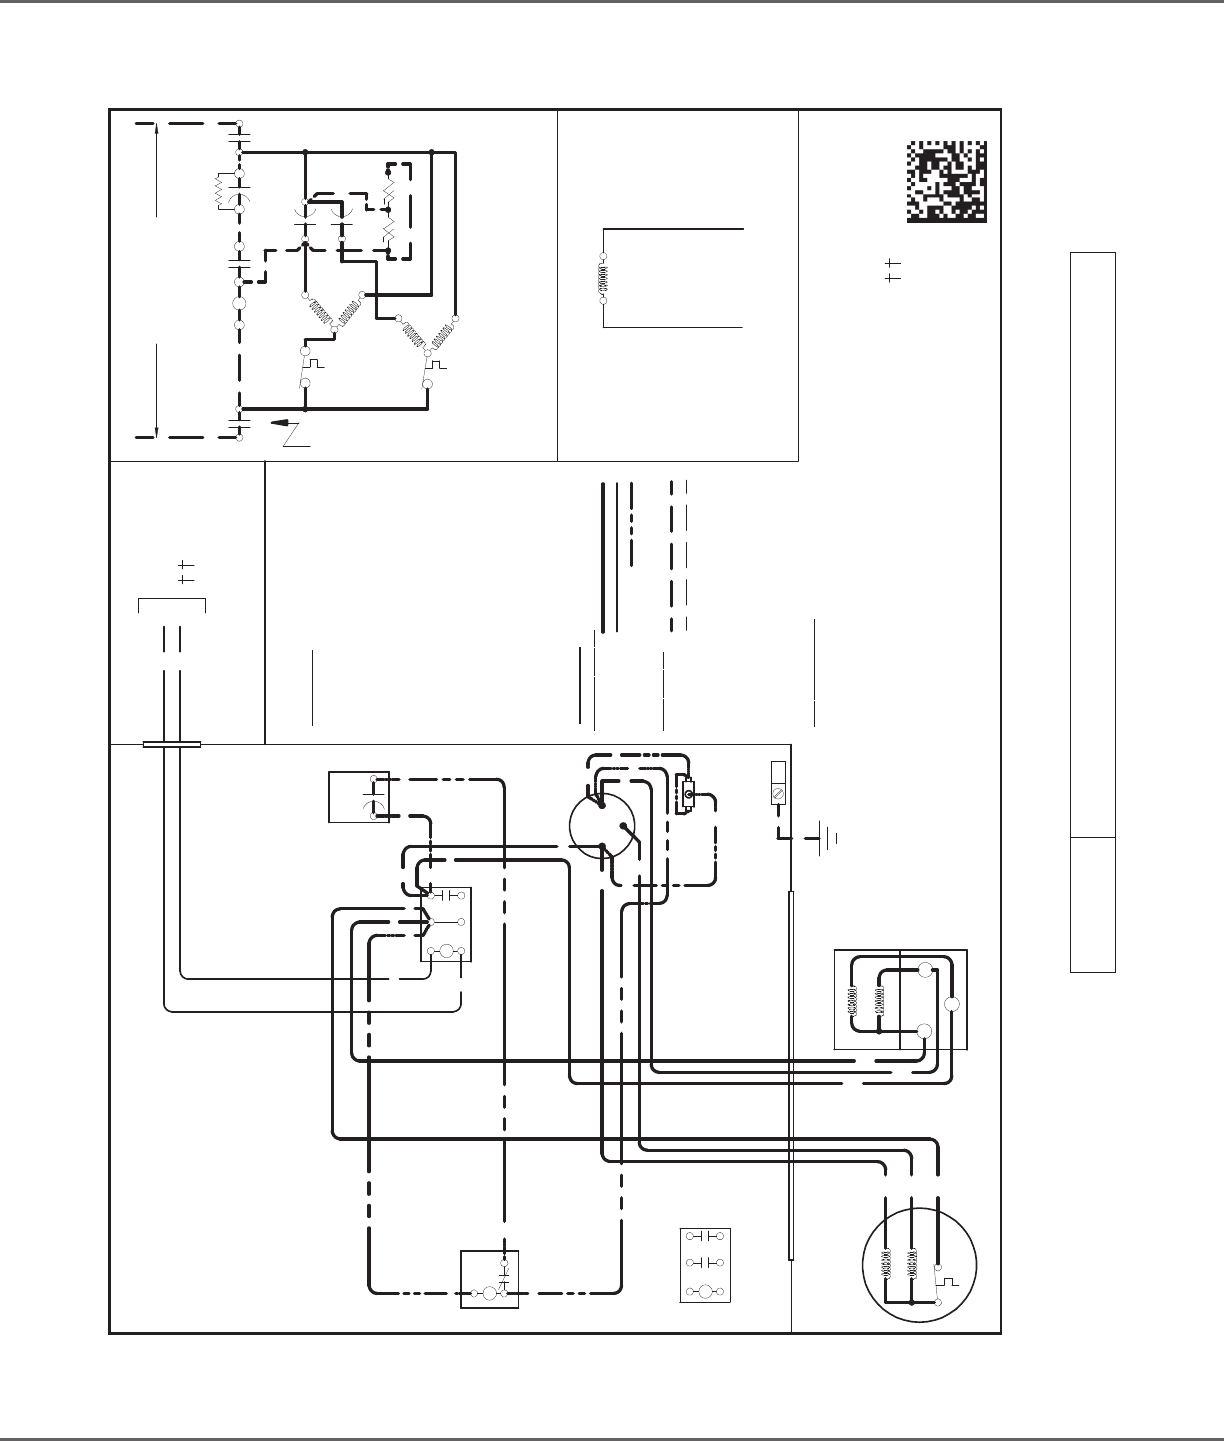 Heat Pumps moreover Chapter 4 together with Air tech air also Goodman Gsc13 Installation Manual Wiring Diagrams further Carrier Air Conditioning Wiring Diagram. on split system heat pump diagram